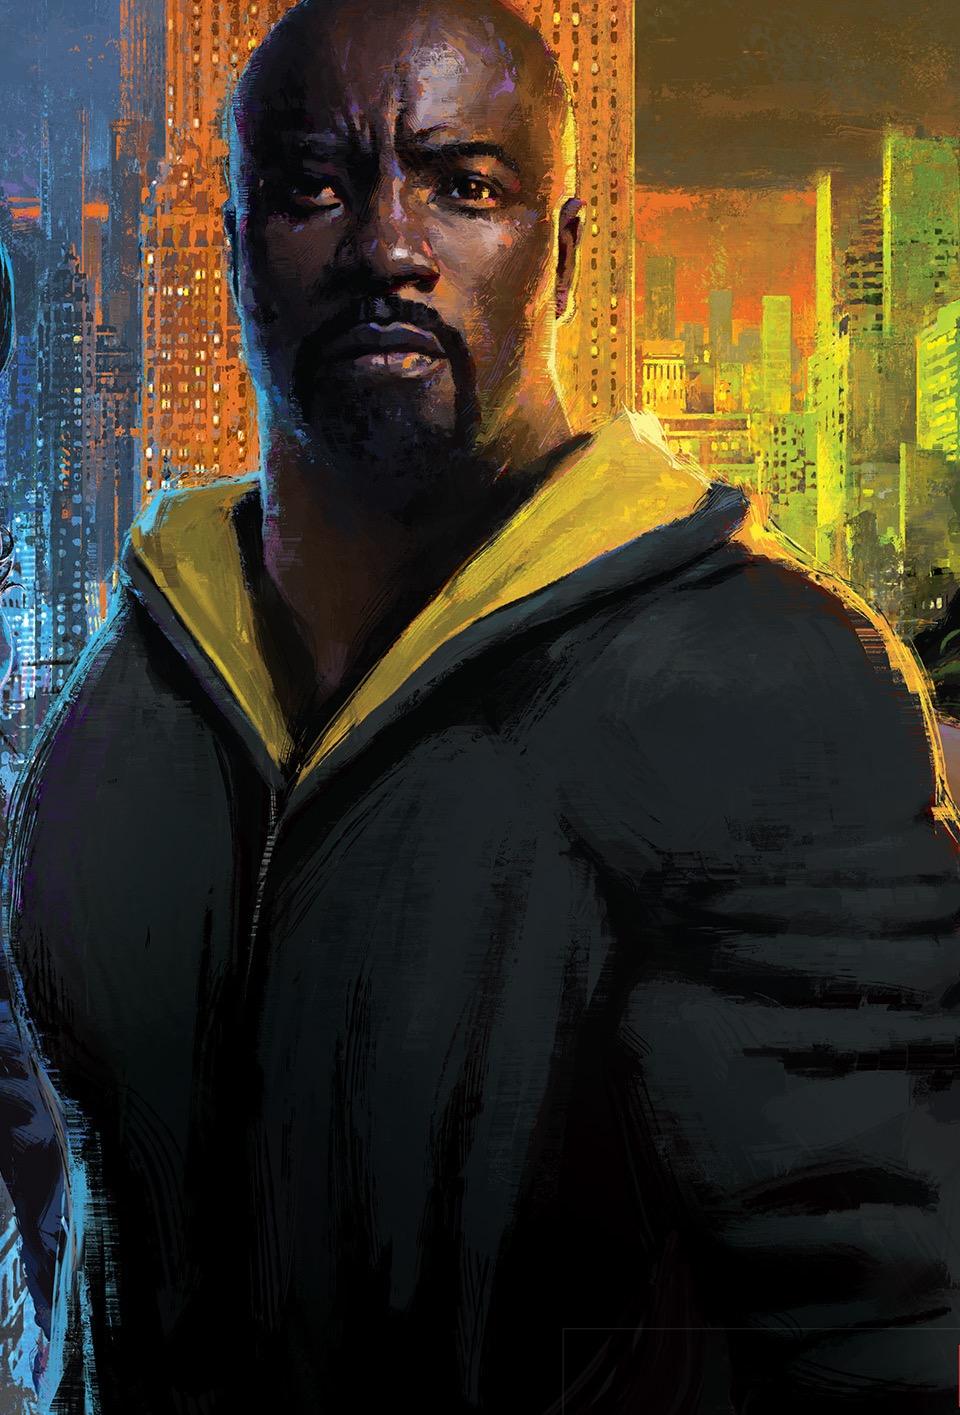 Luke Cage (Marvel Cinematic Universe)